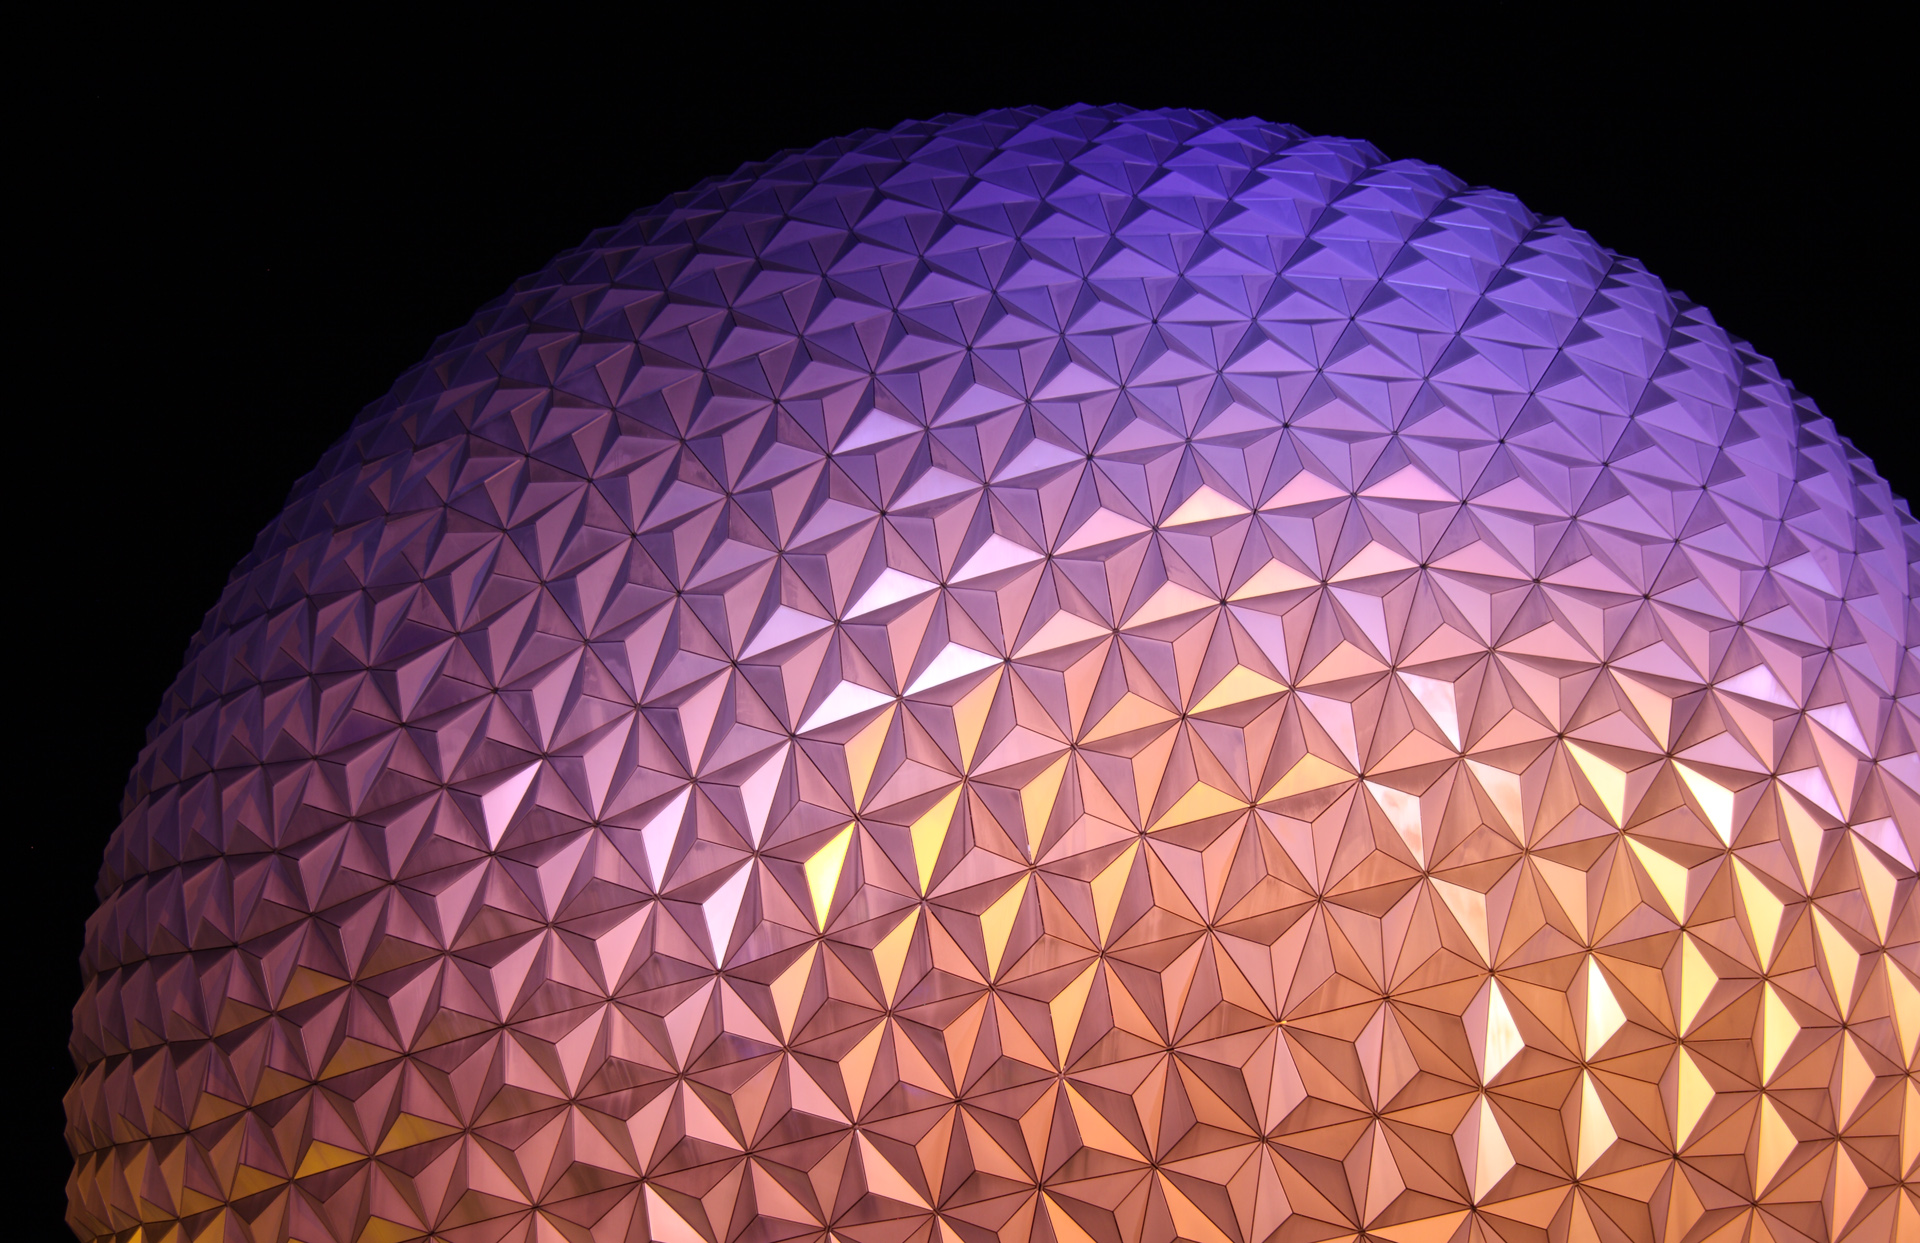 Epcot Center - Digital (Night) - Name Withheld Per Request